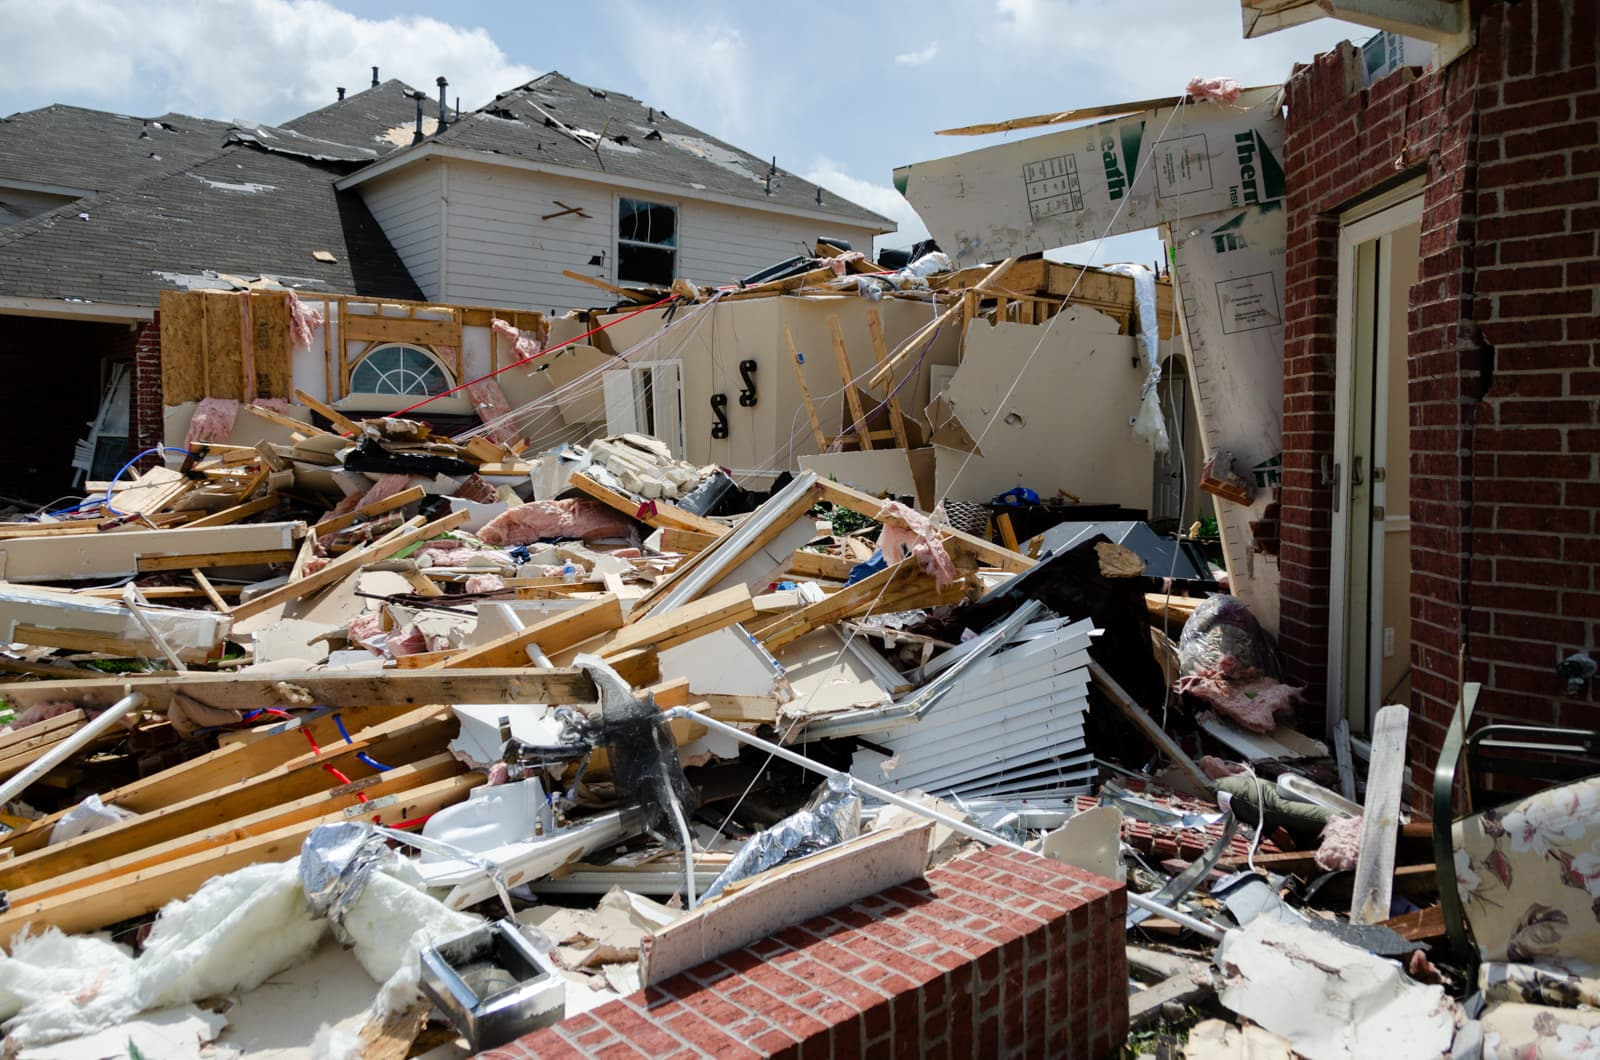 A pile of rubble from a fallen home after the Forney Tornado